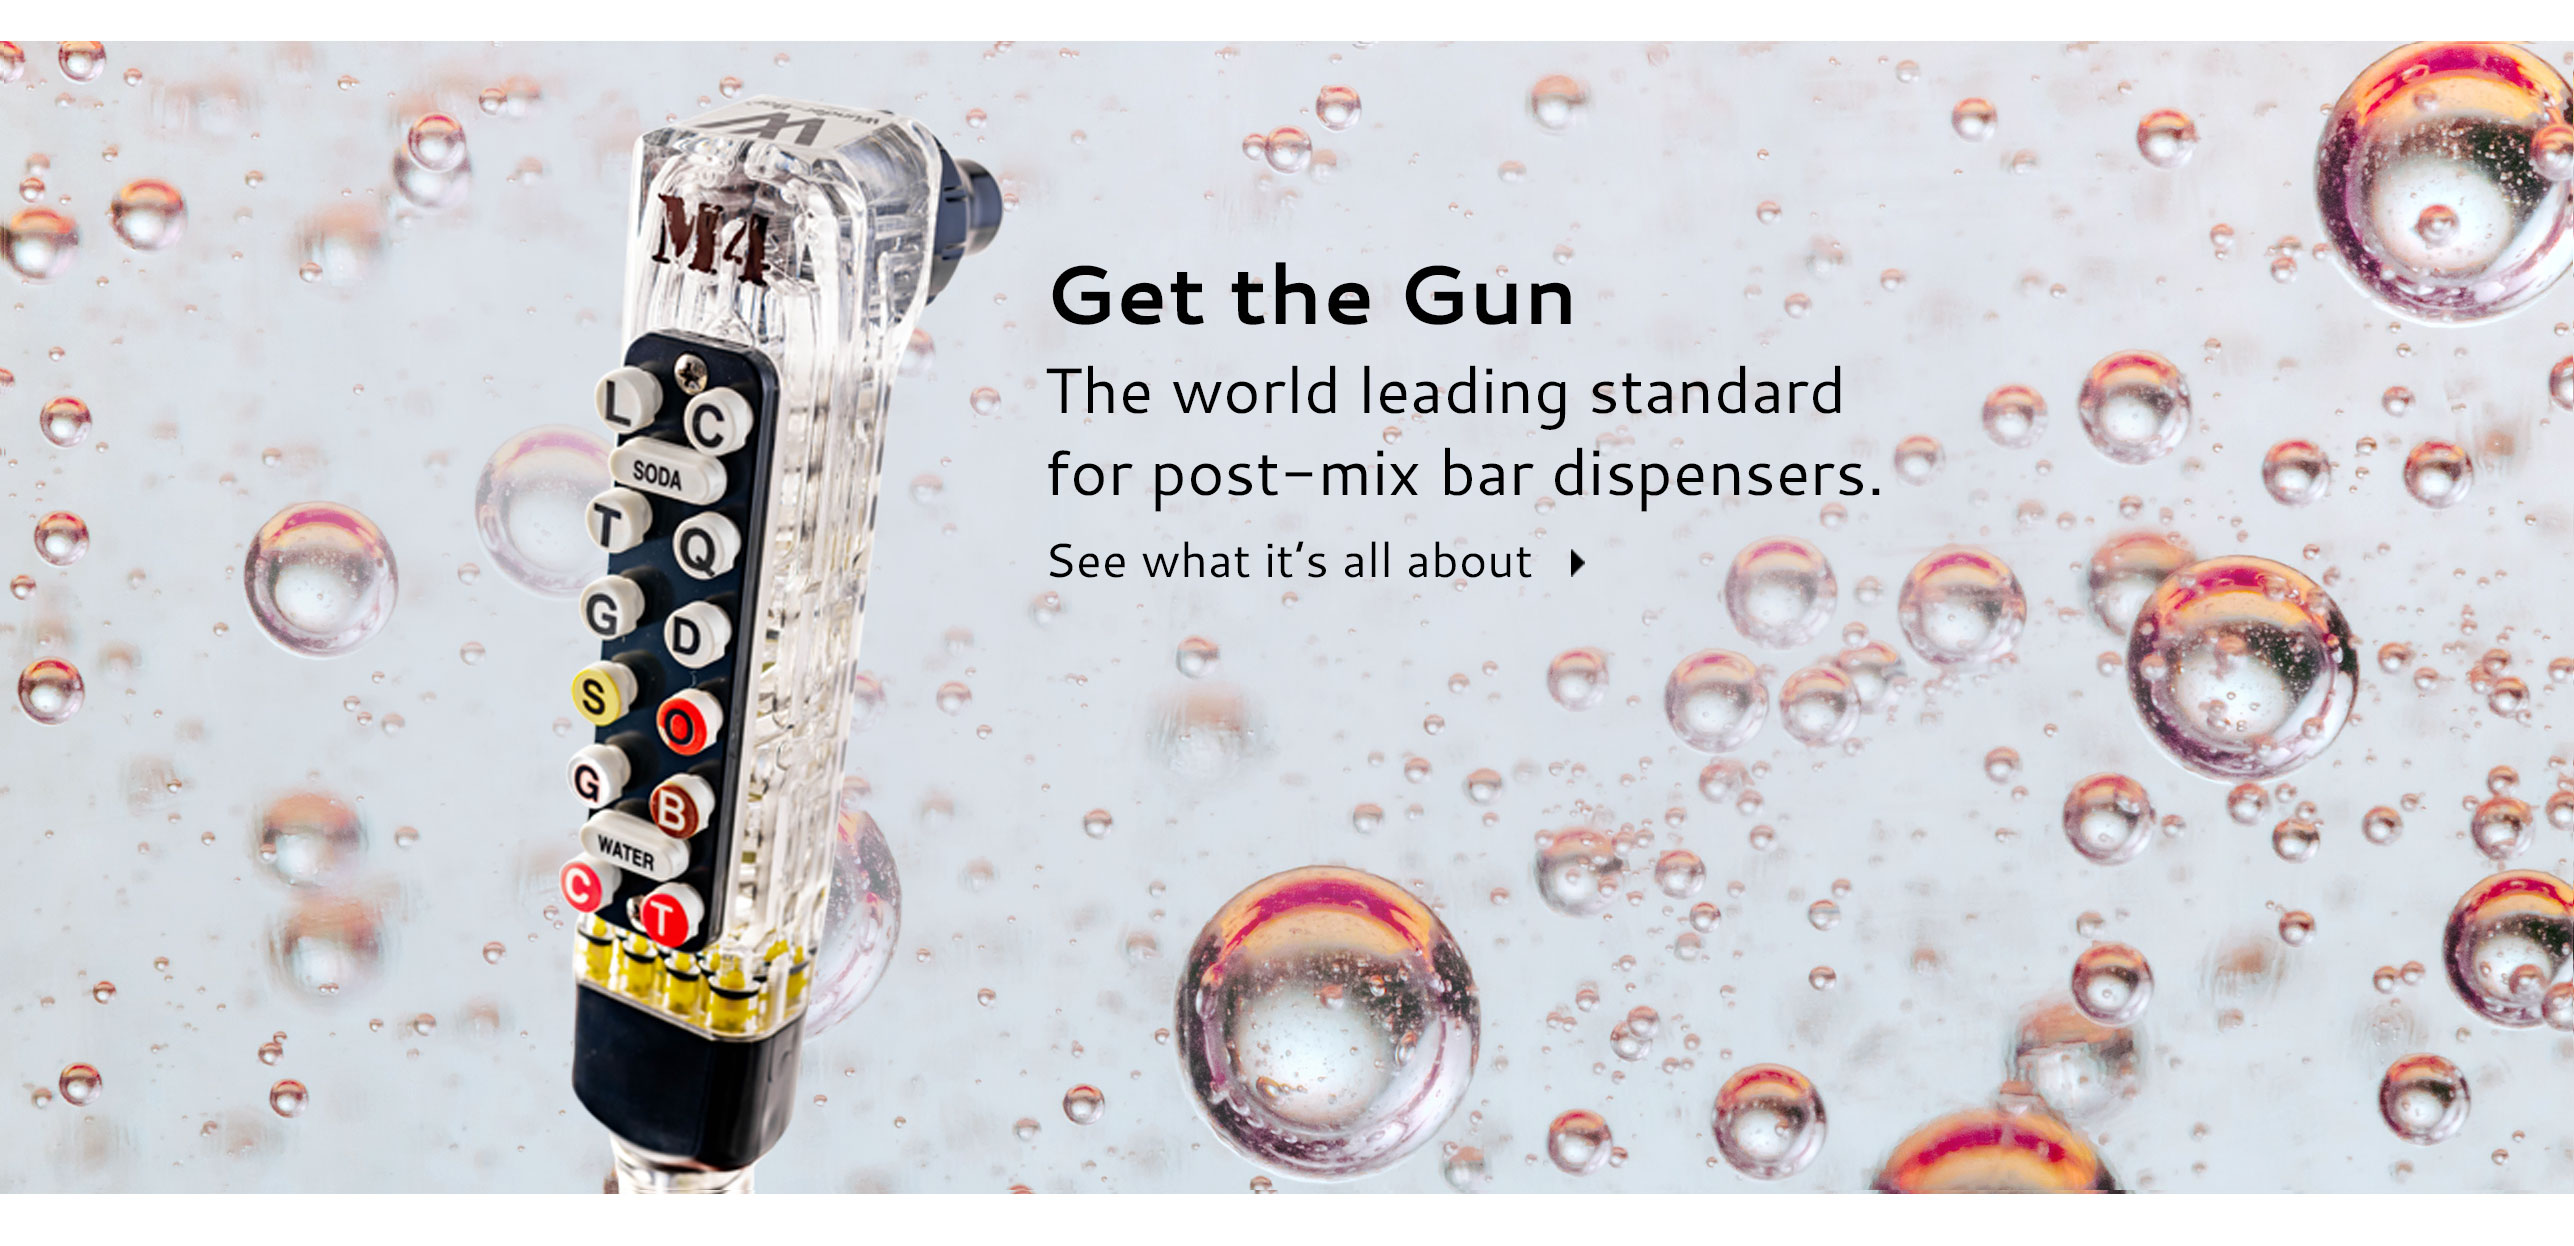 Bargun The world leading standard for post-mix bar dispensers.